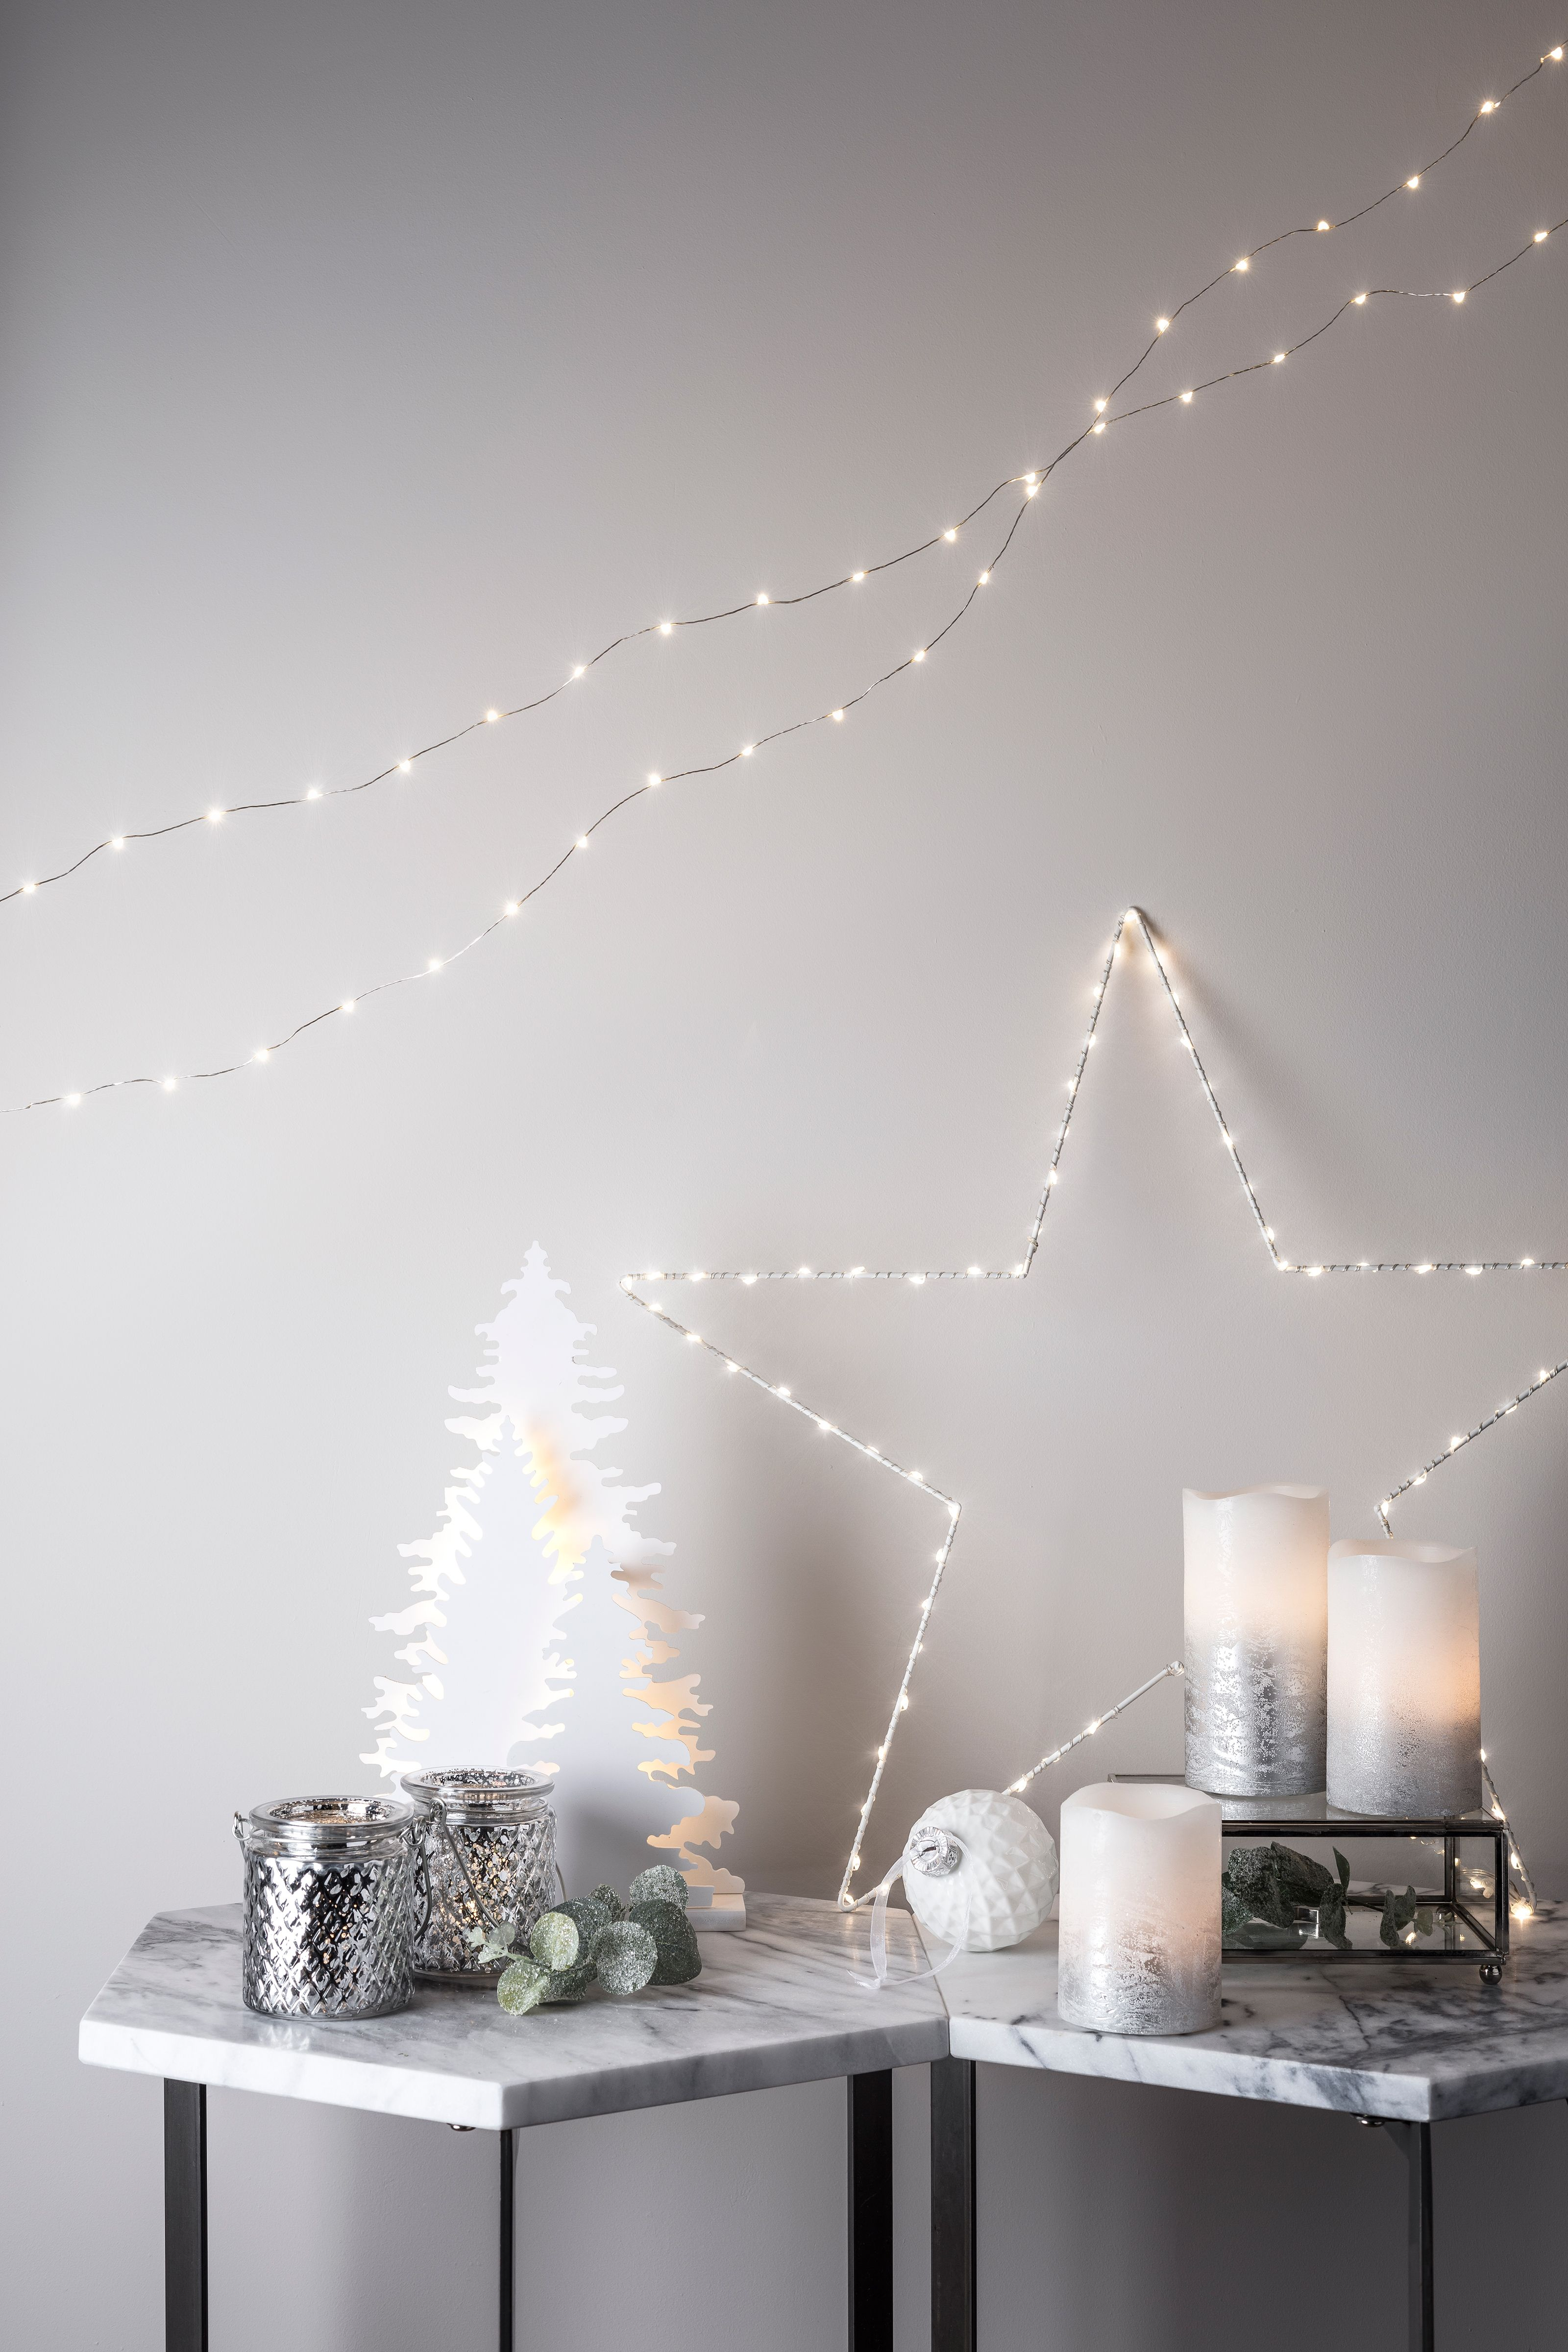 Create a magical white winter feel this Christmas with our silver